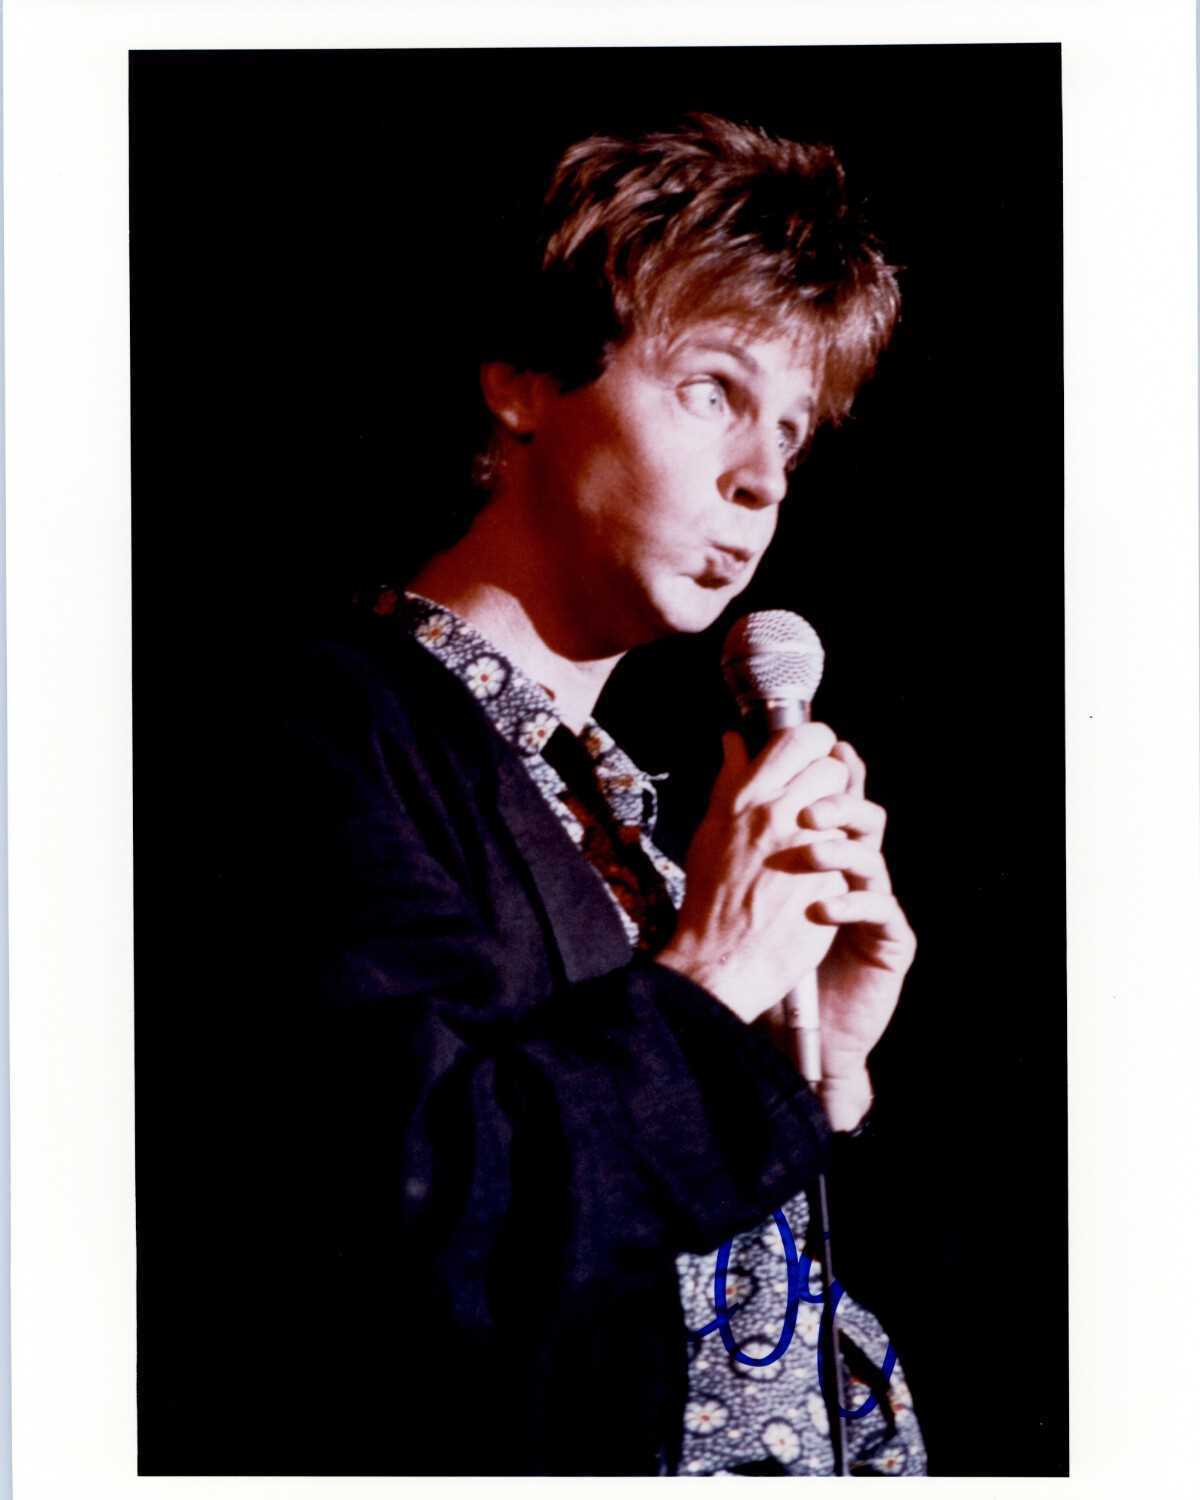 Primary image for Dana Carvey Signed Autographed Glossy 8x10 Photo